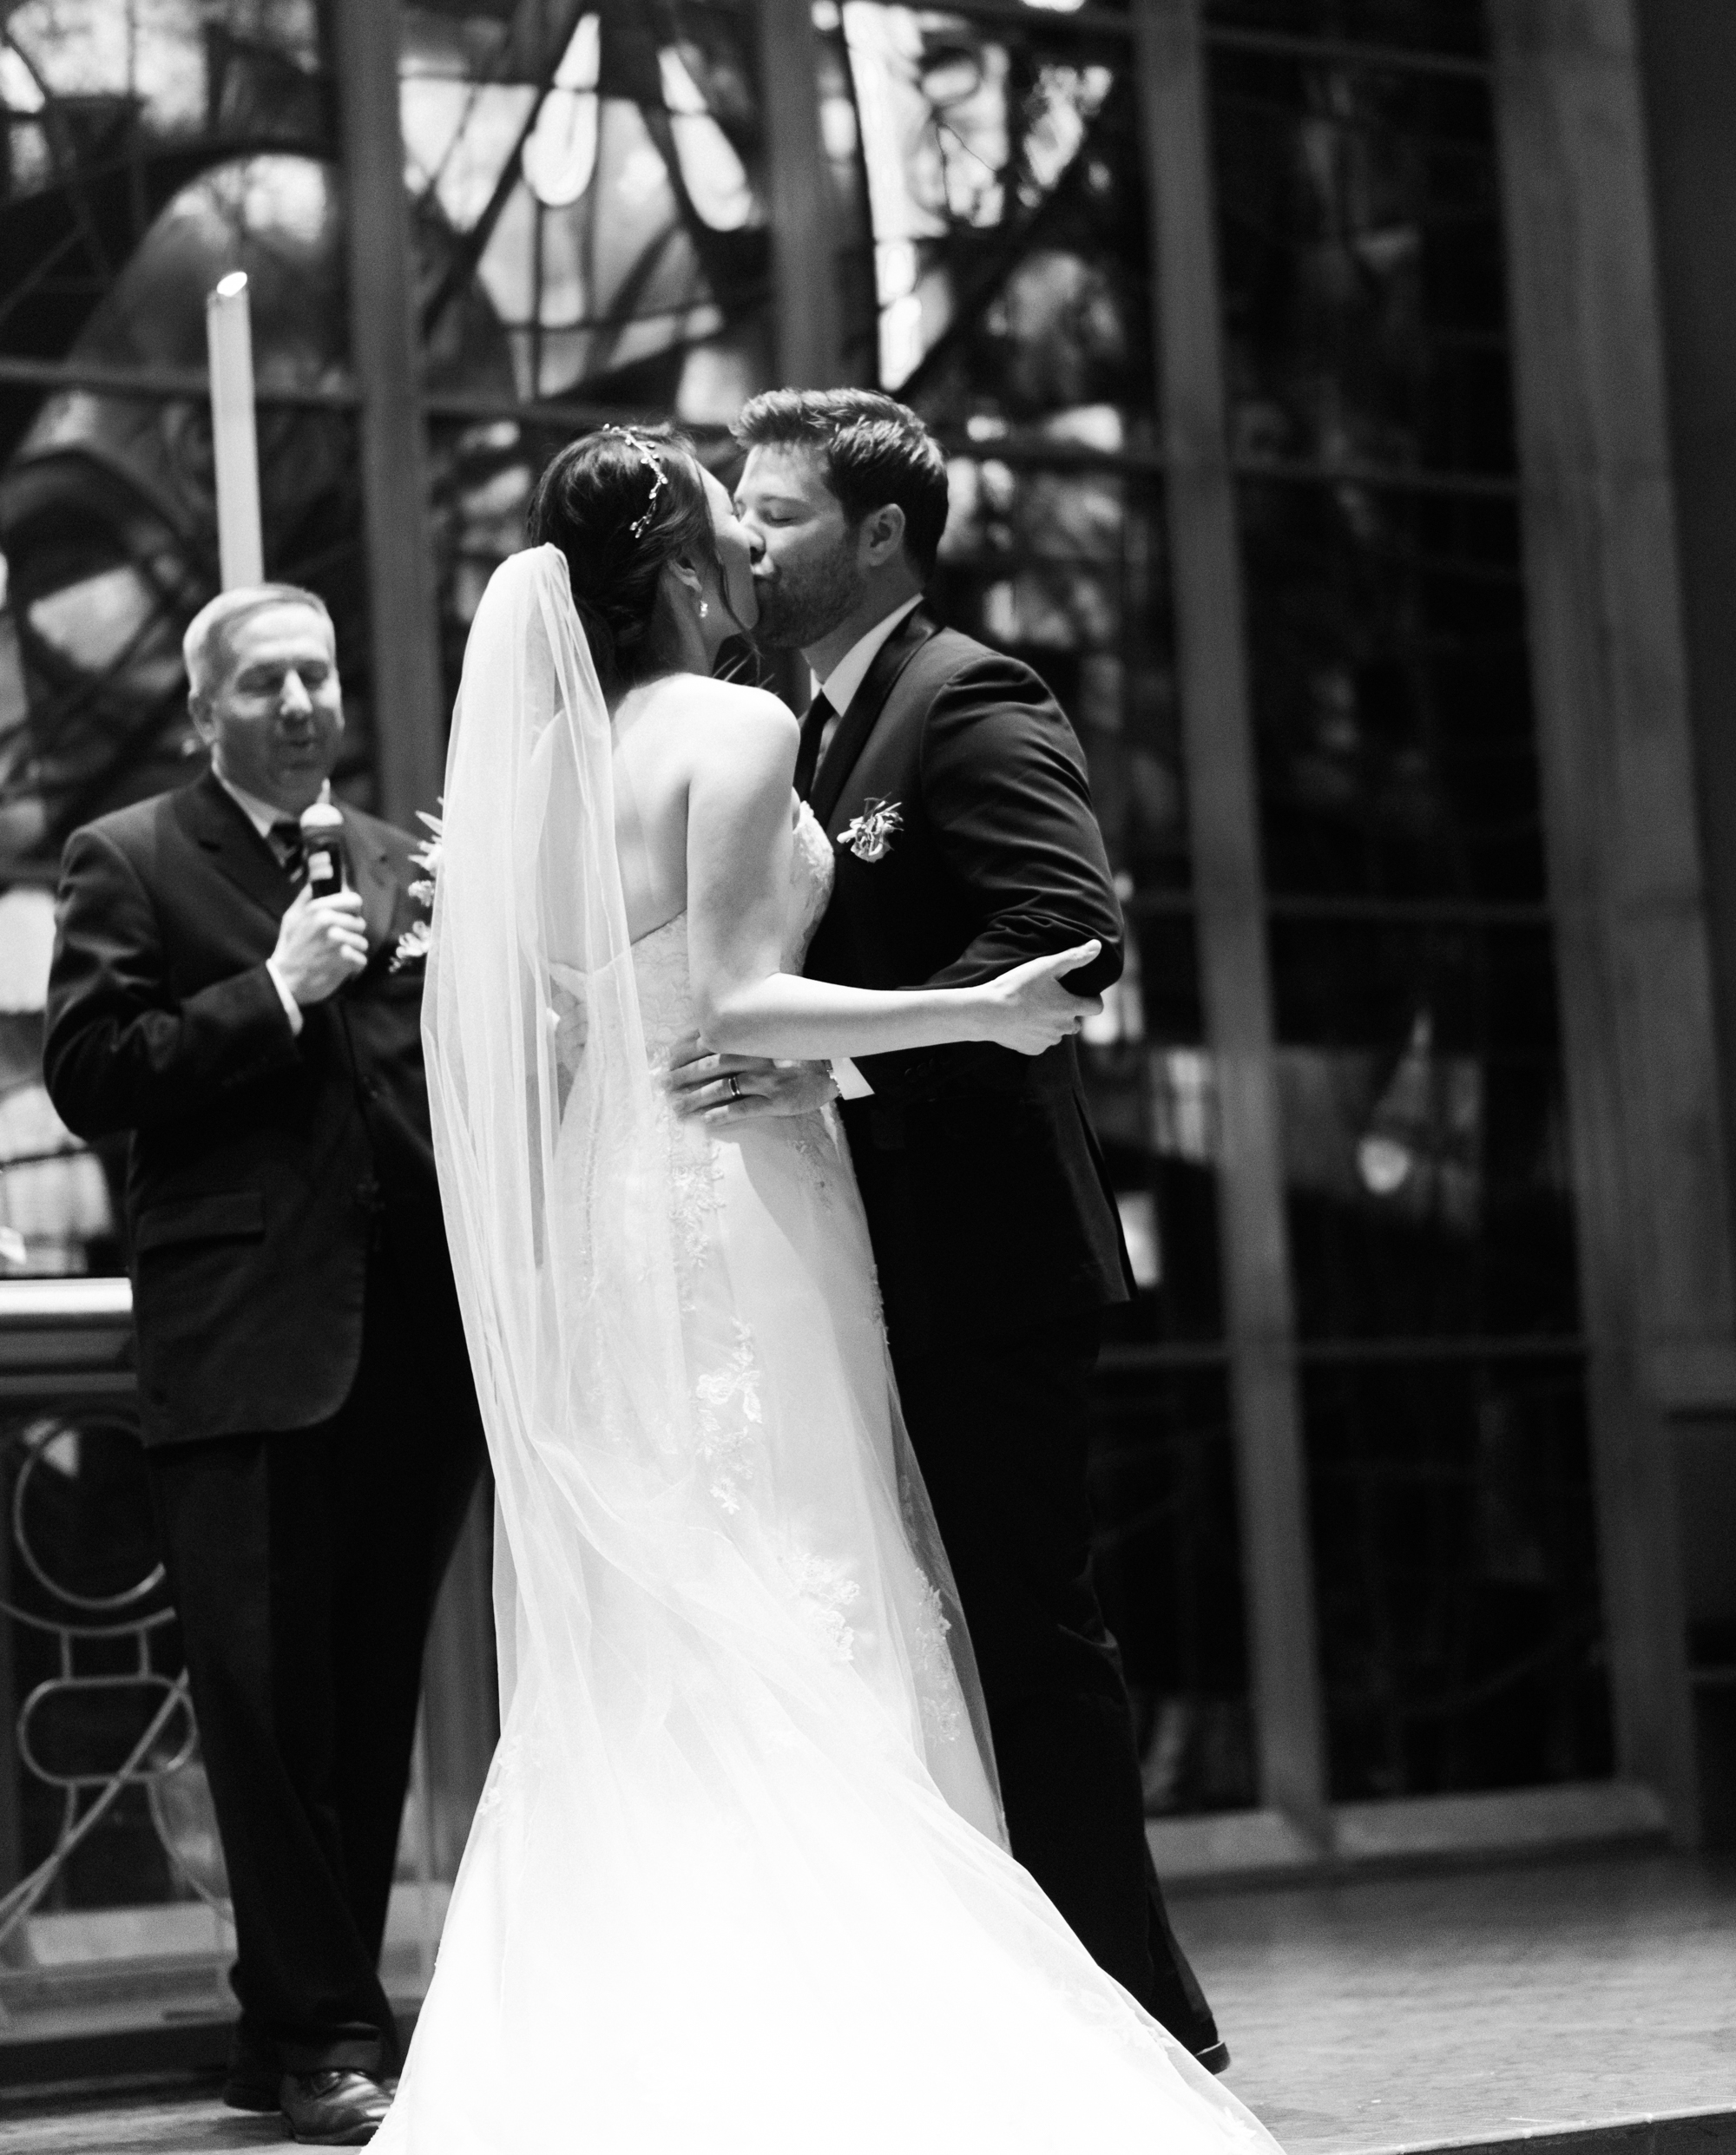 Bonphotage Chicago Wedding Photographer - Alice Millar Chapel Northwestern